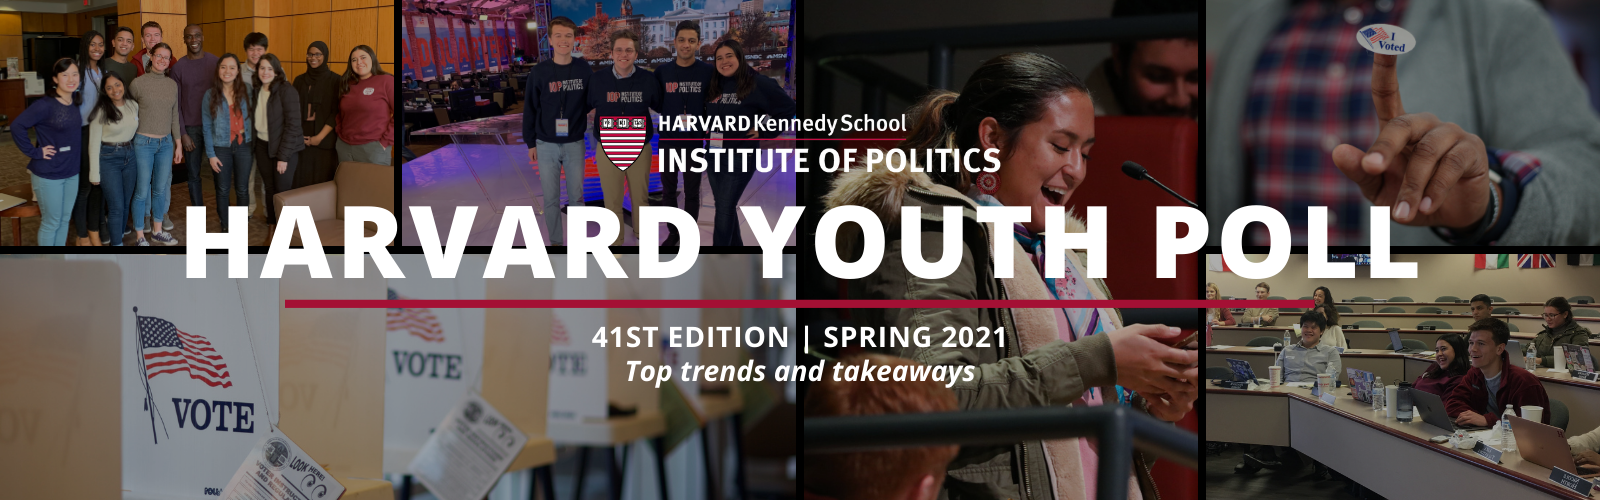 """Text reads: """"Harvard Youth Poll, 41st Edition, Spring 2021, Top trends and takeaways."""" Collage of pictures, including: voting booth, Harvard Youth Poll students in South Carolina, I Voted sticker, and female student asking question at microphone"""